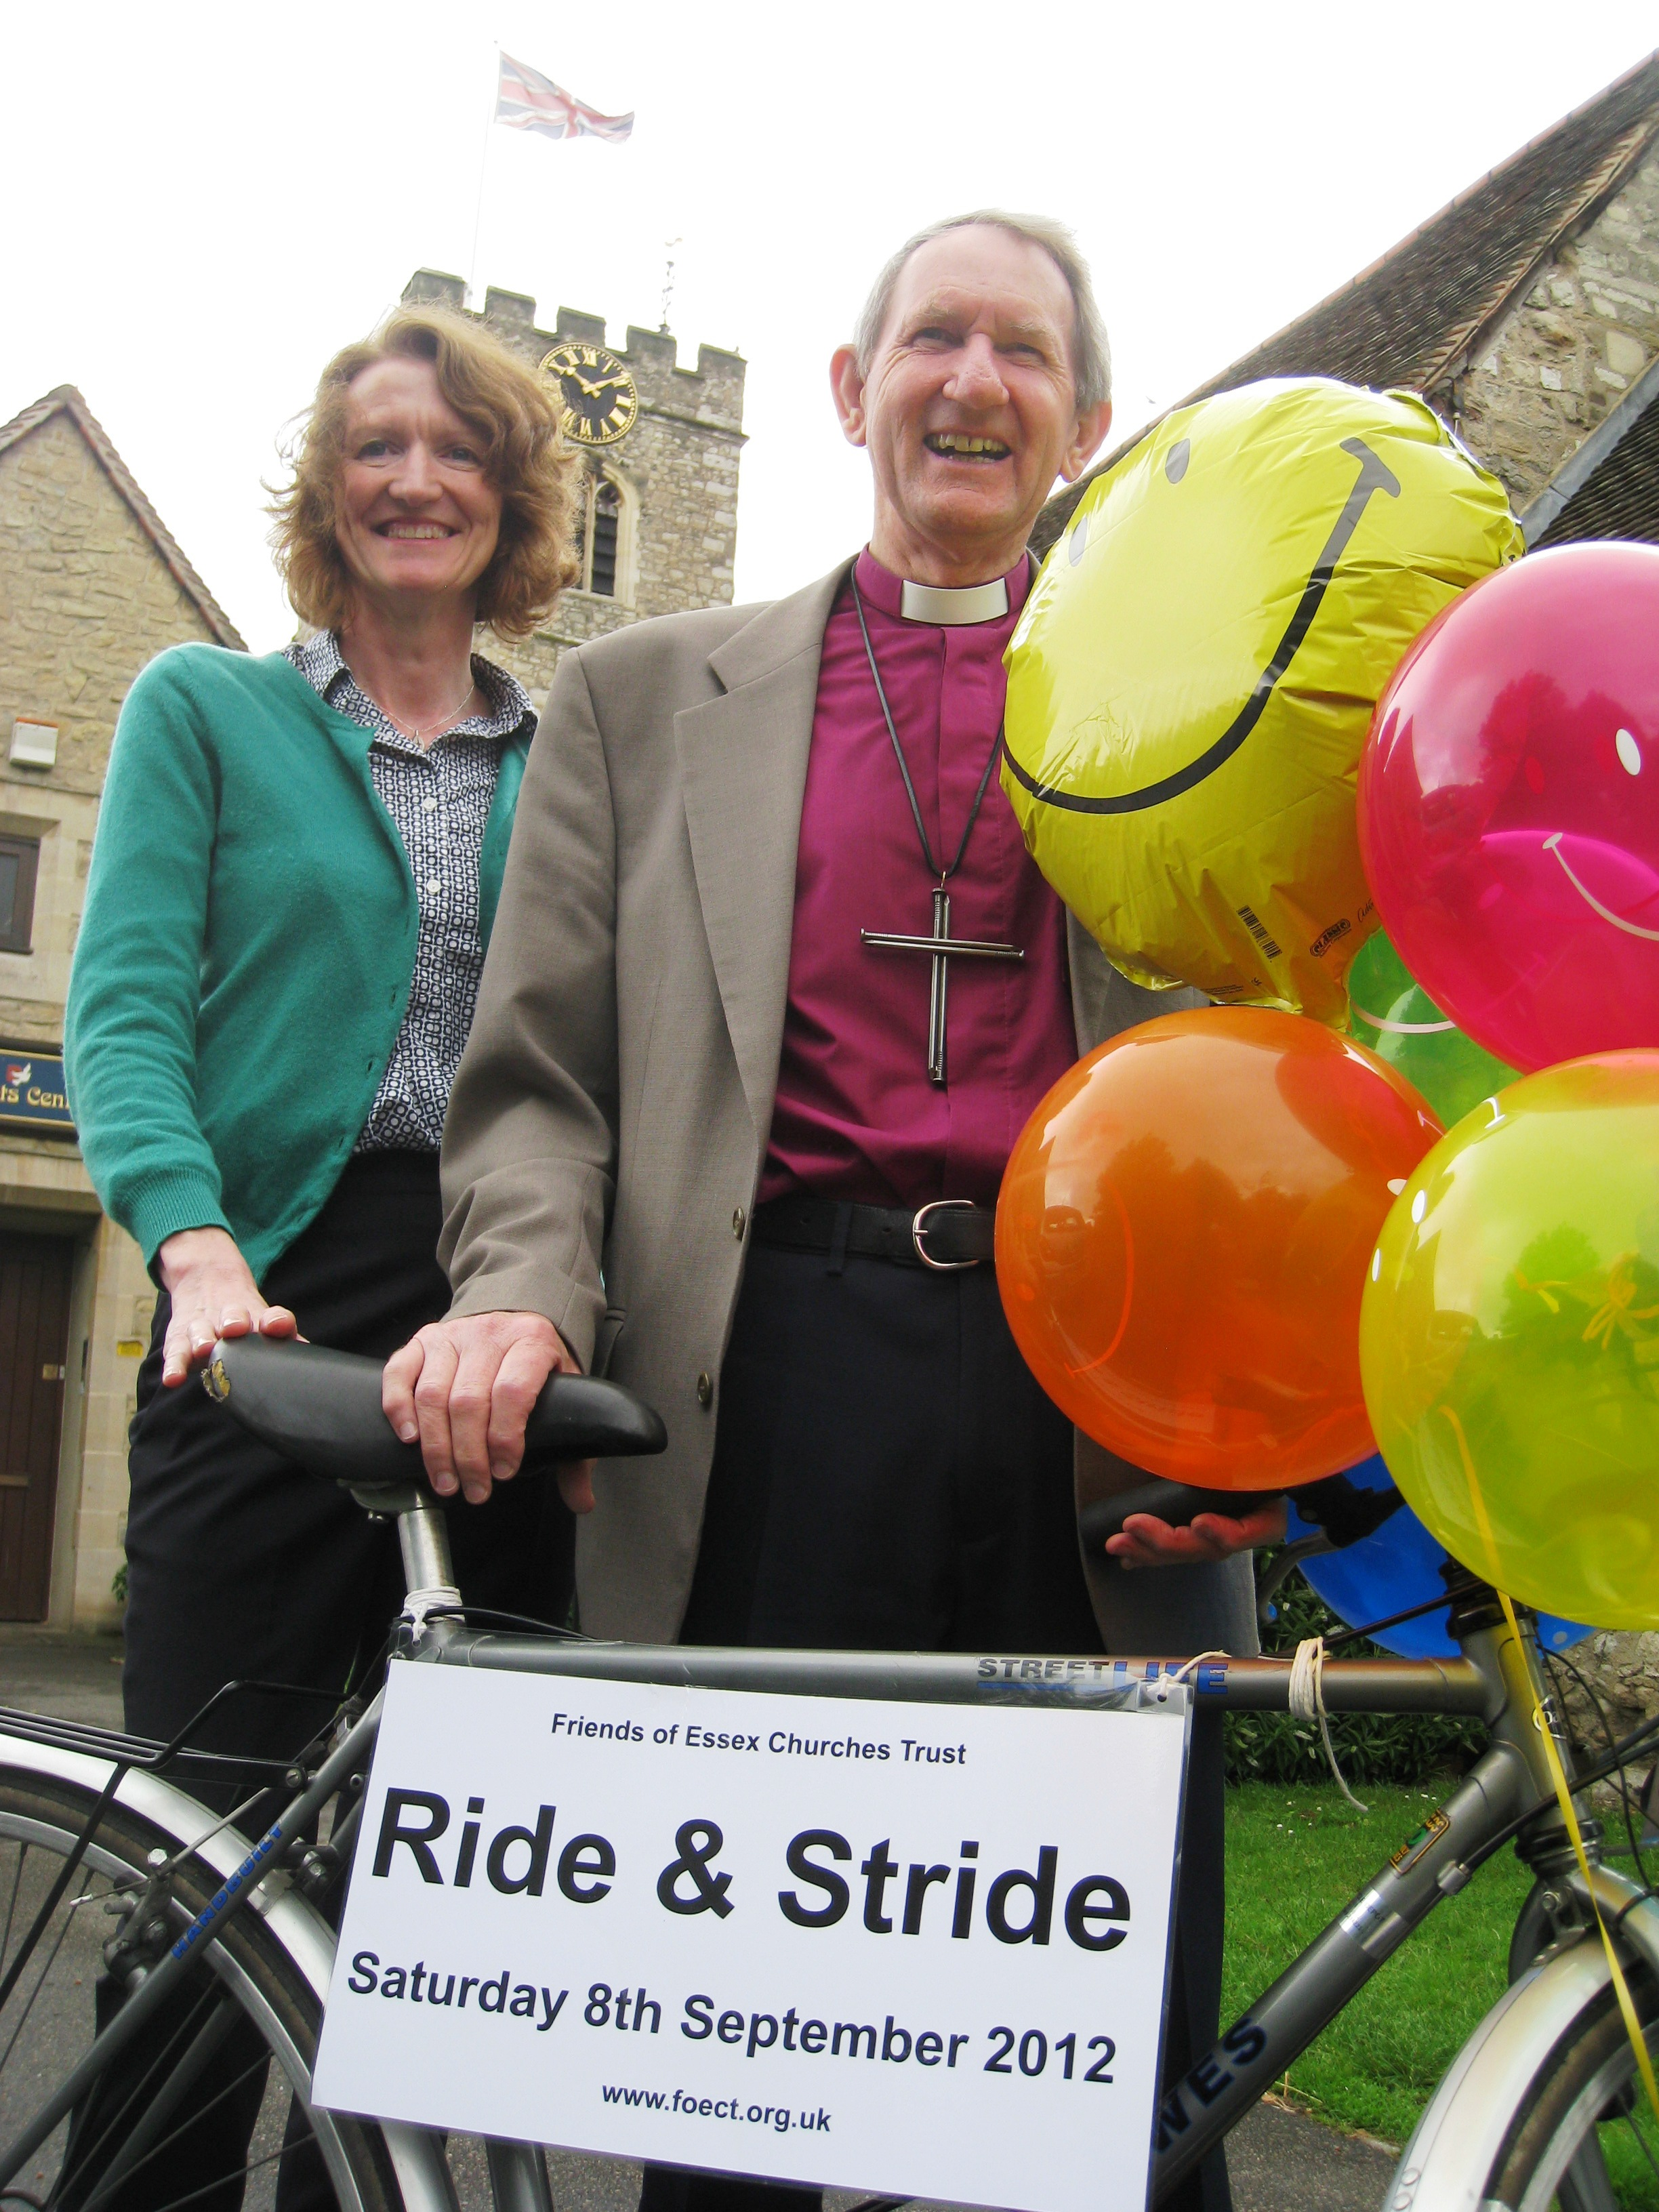 Philippa King and Bishop David Hawkins launch Ride + Stride in Essex